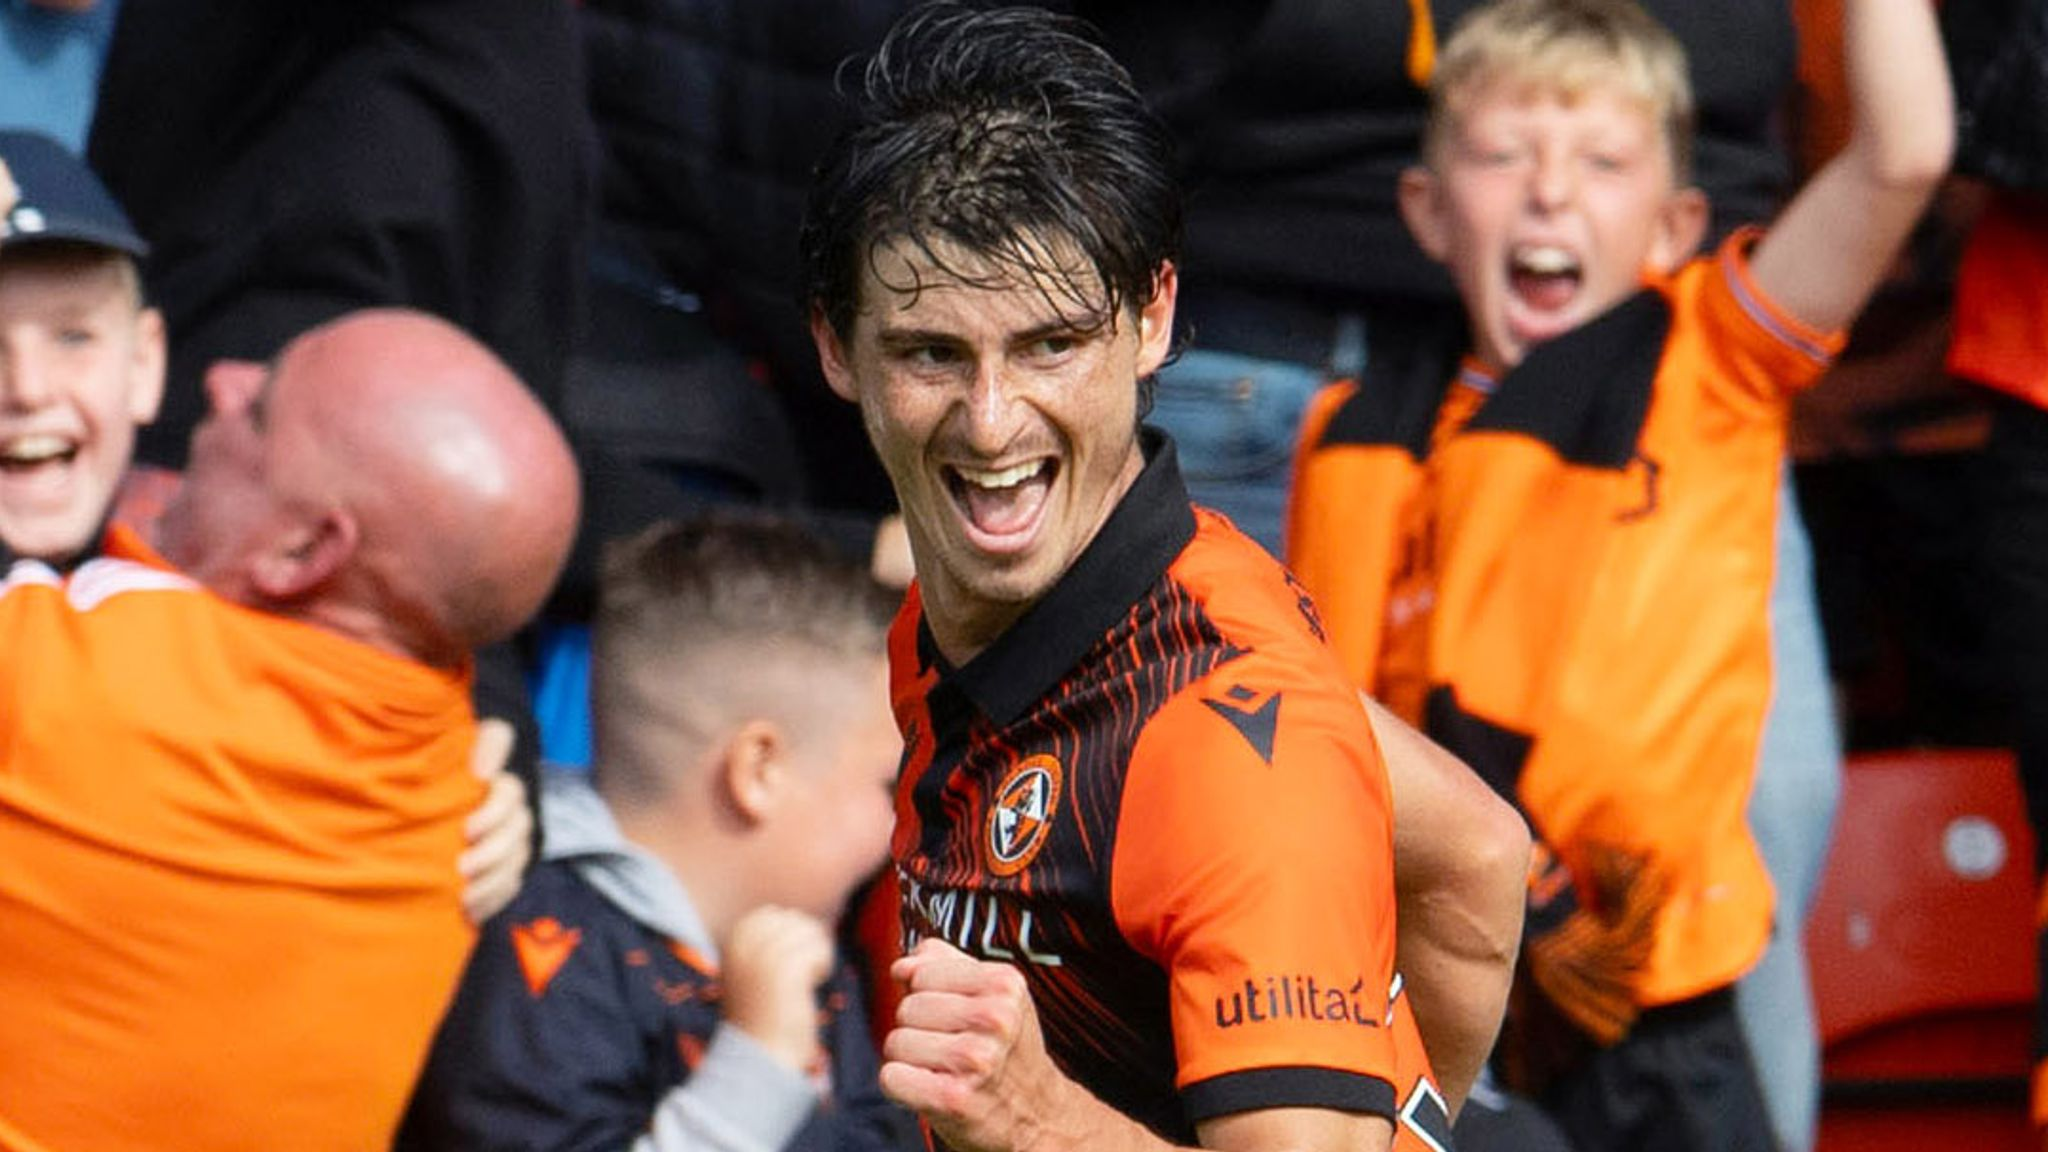 Dundee 0-1 Dundee United: Ian Harkes delivers derby delight for Dundee Utd at Tannadice